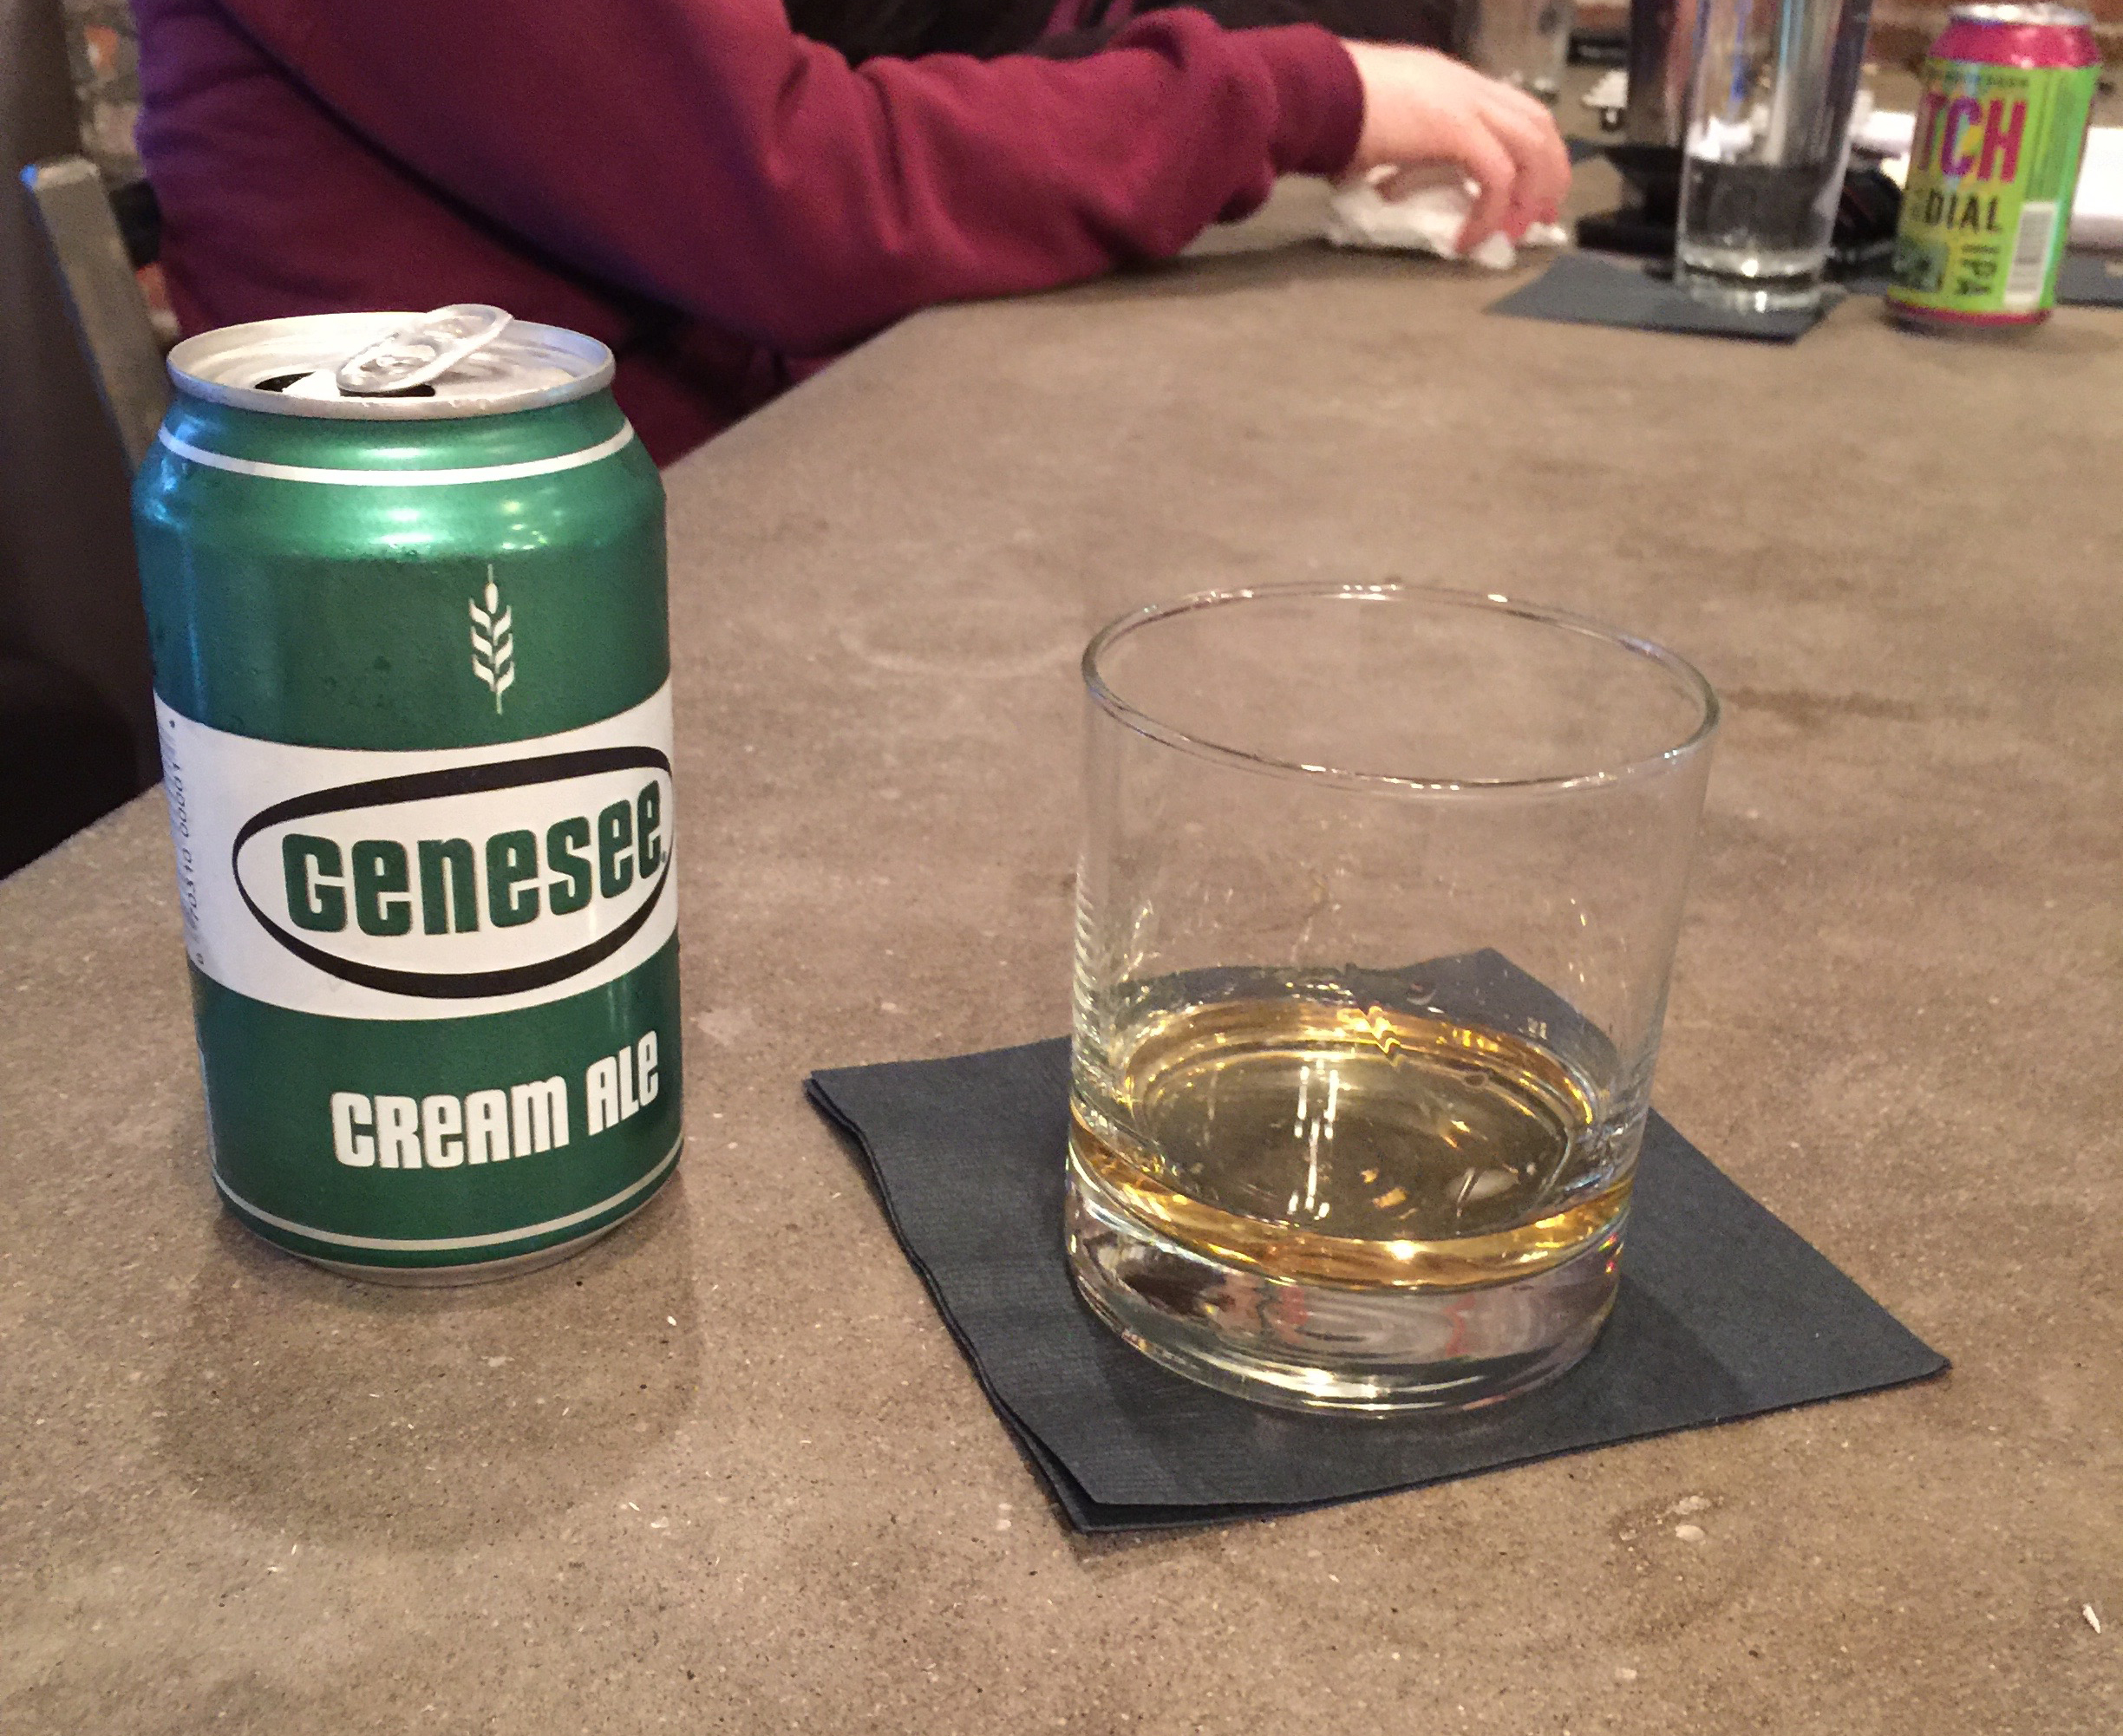 Genny Cream Ale and whiskey neat